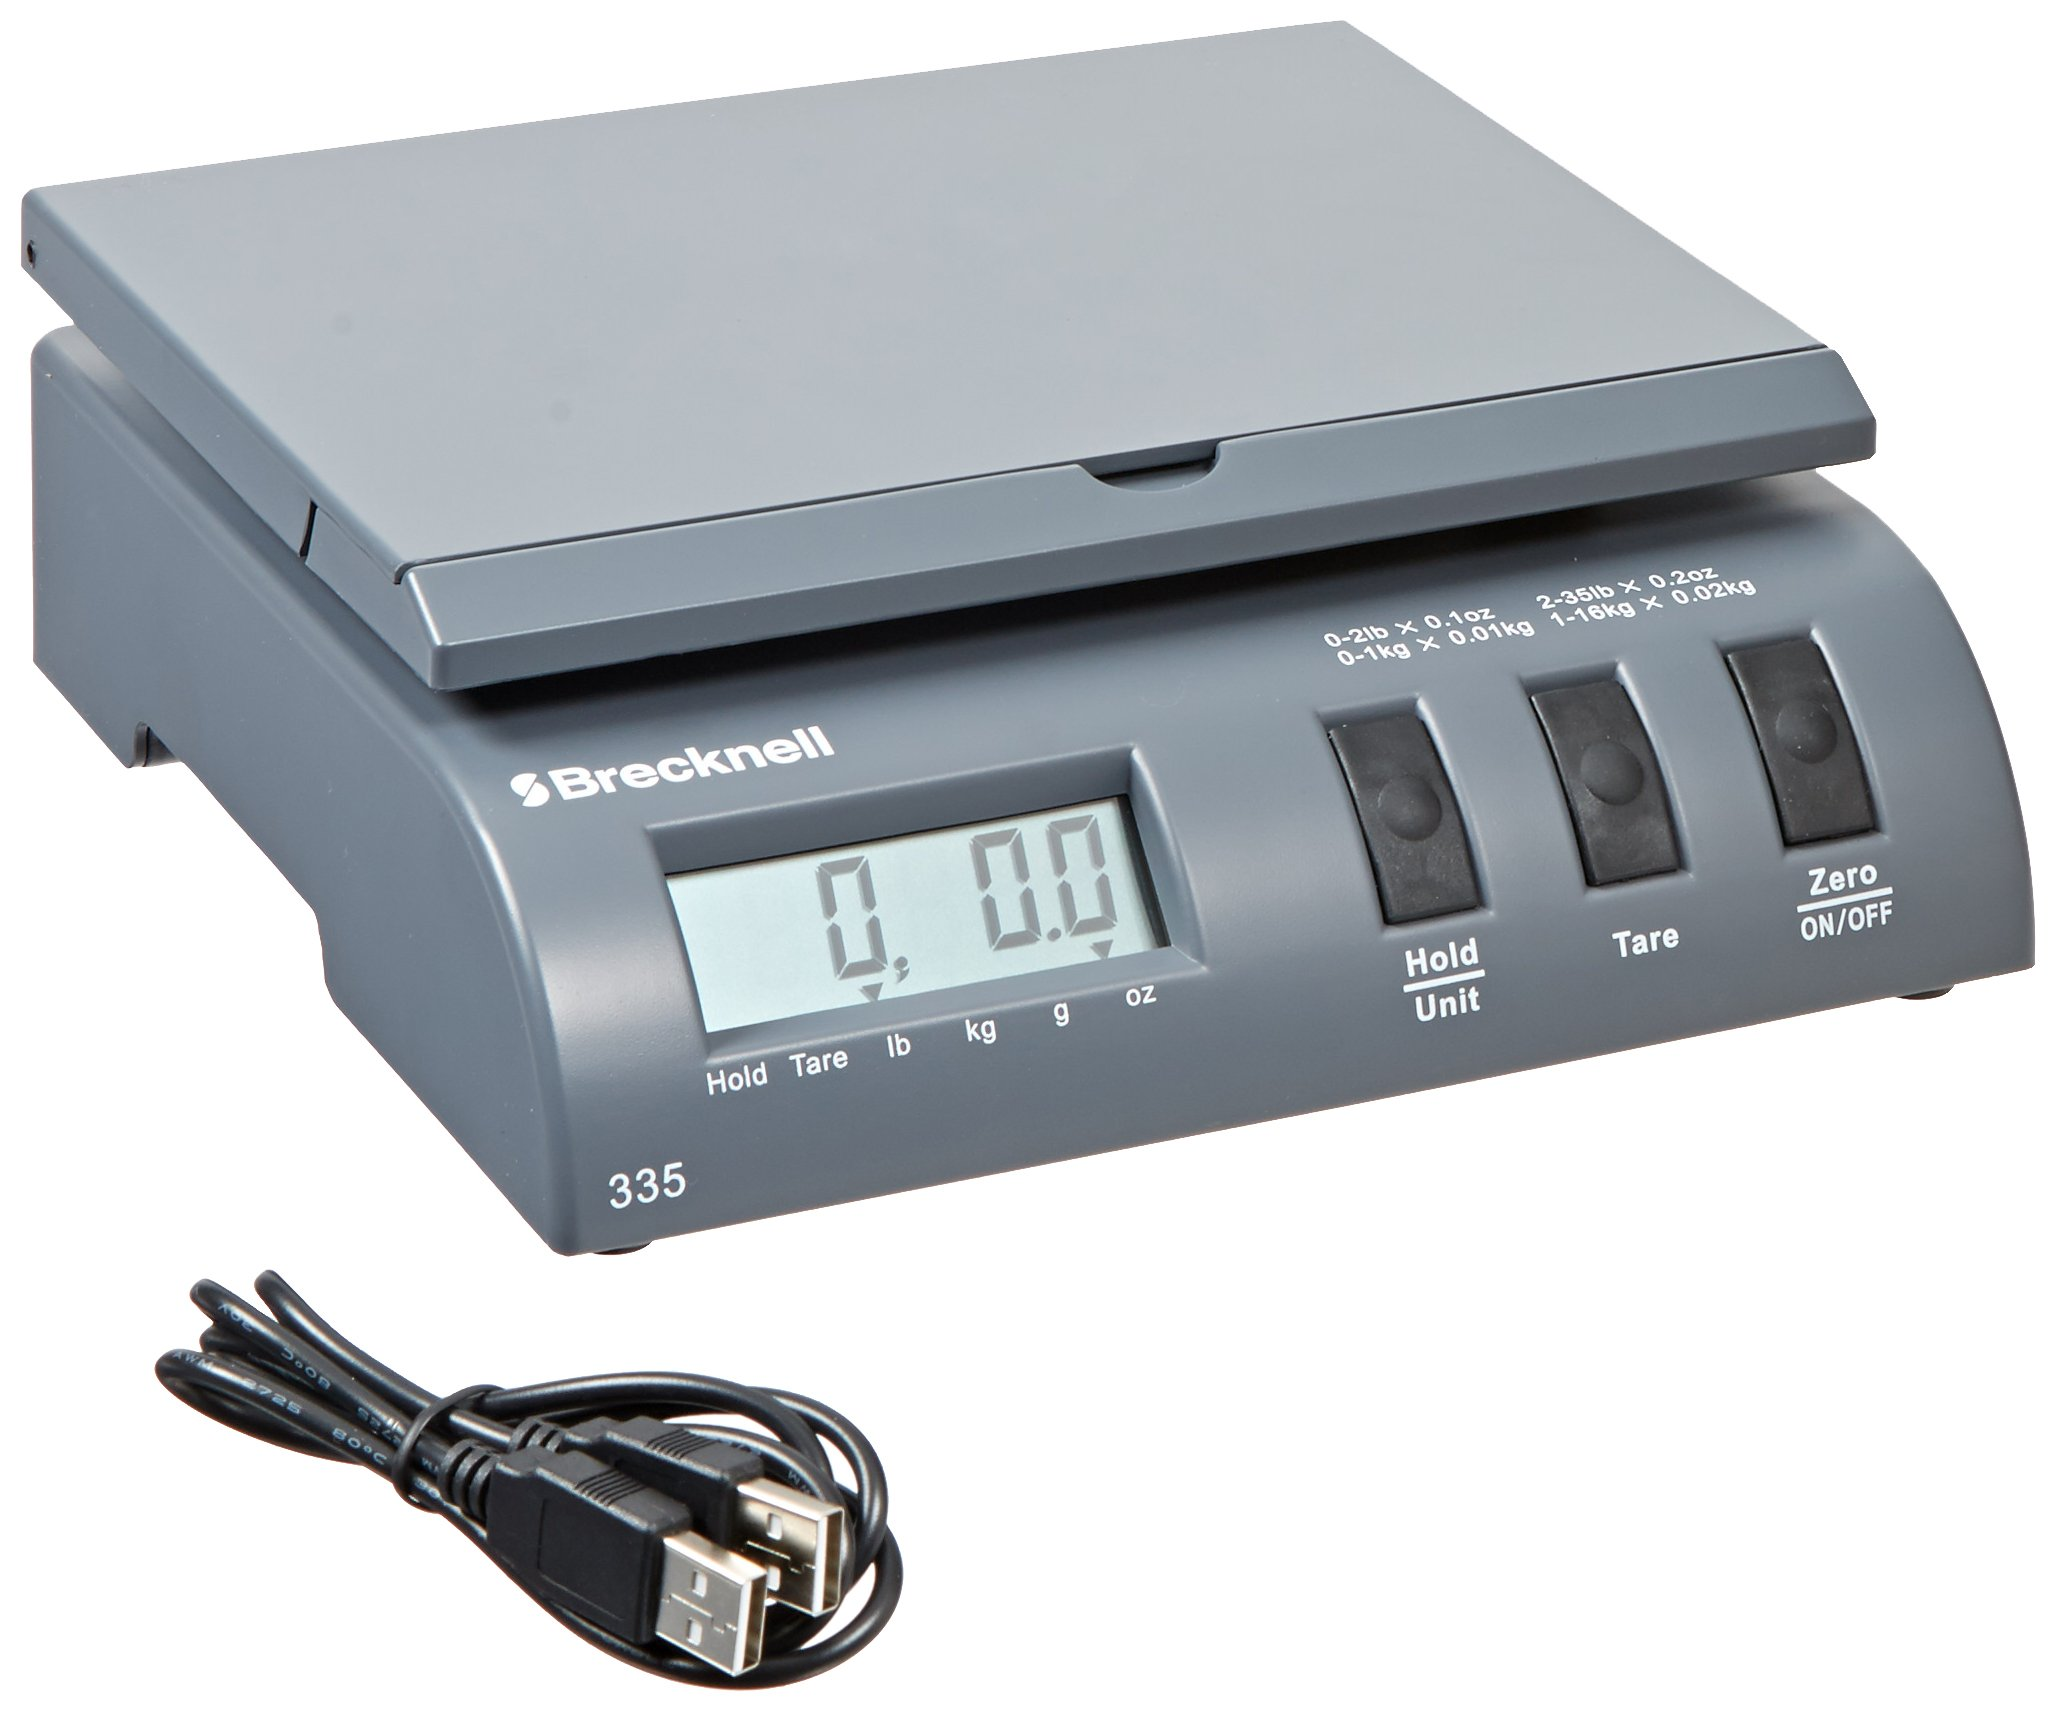 Brecknell 335-35 Electronic Postal Office Scale, 35lb/16kg Capacity, 0.2oz/5g Readability